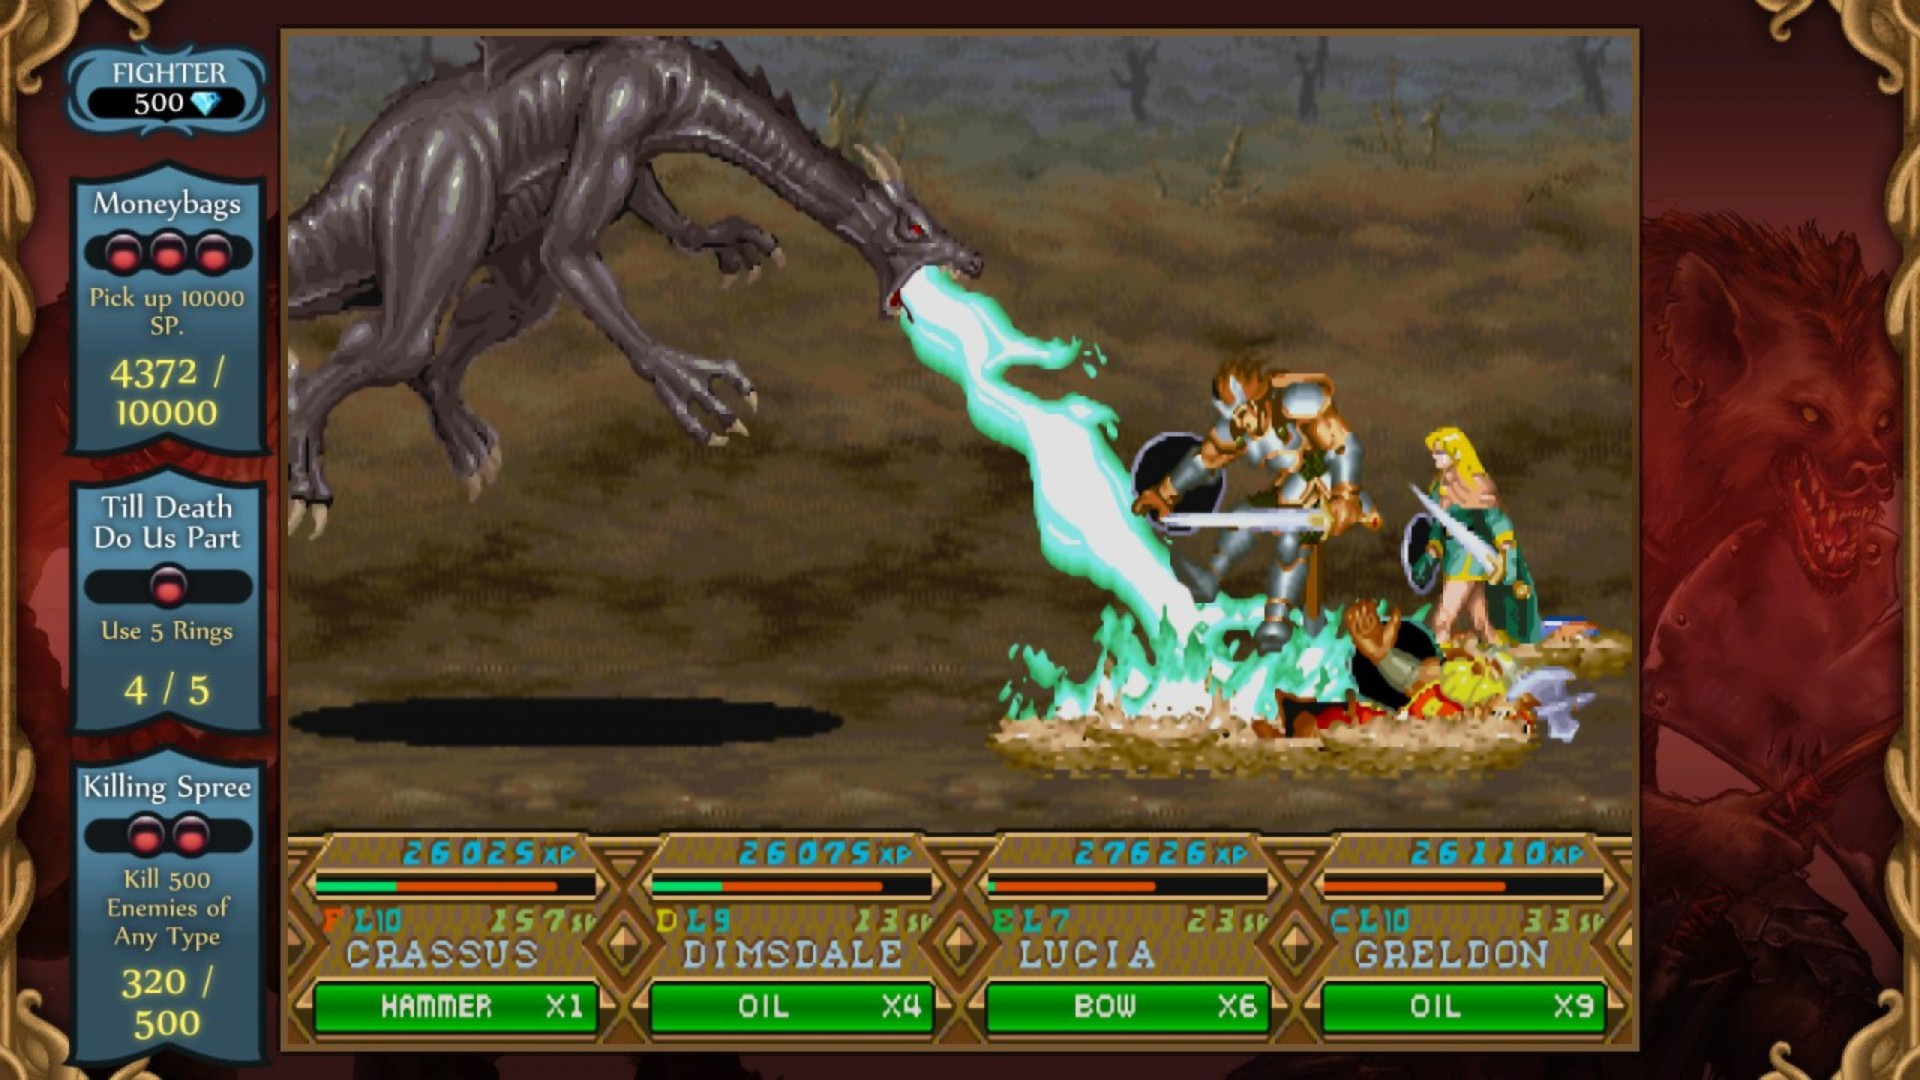 DUNGEONS & DRAGONS: CHRONICLES OF MYSTARA LICENSE